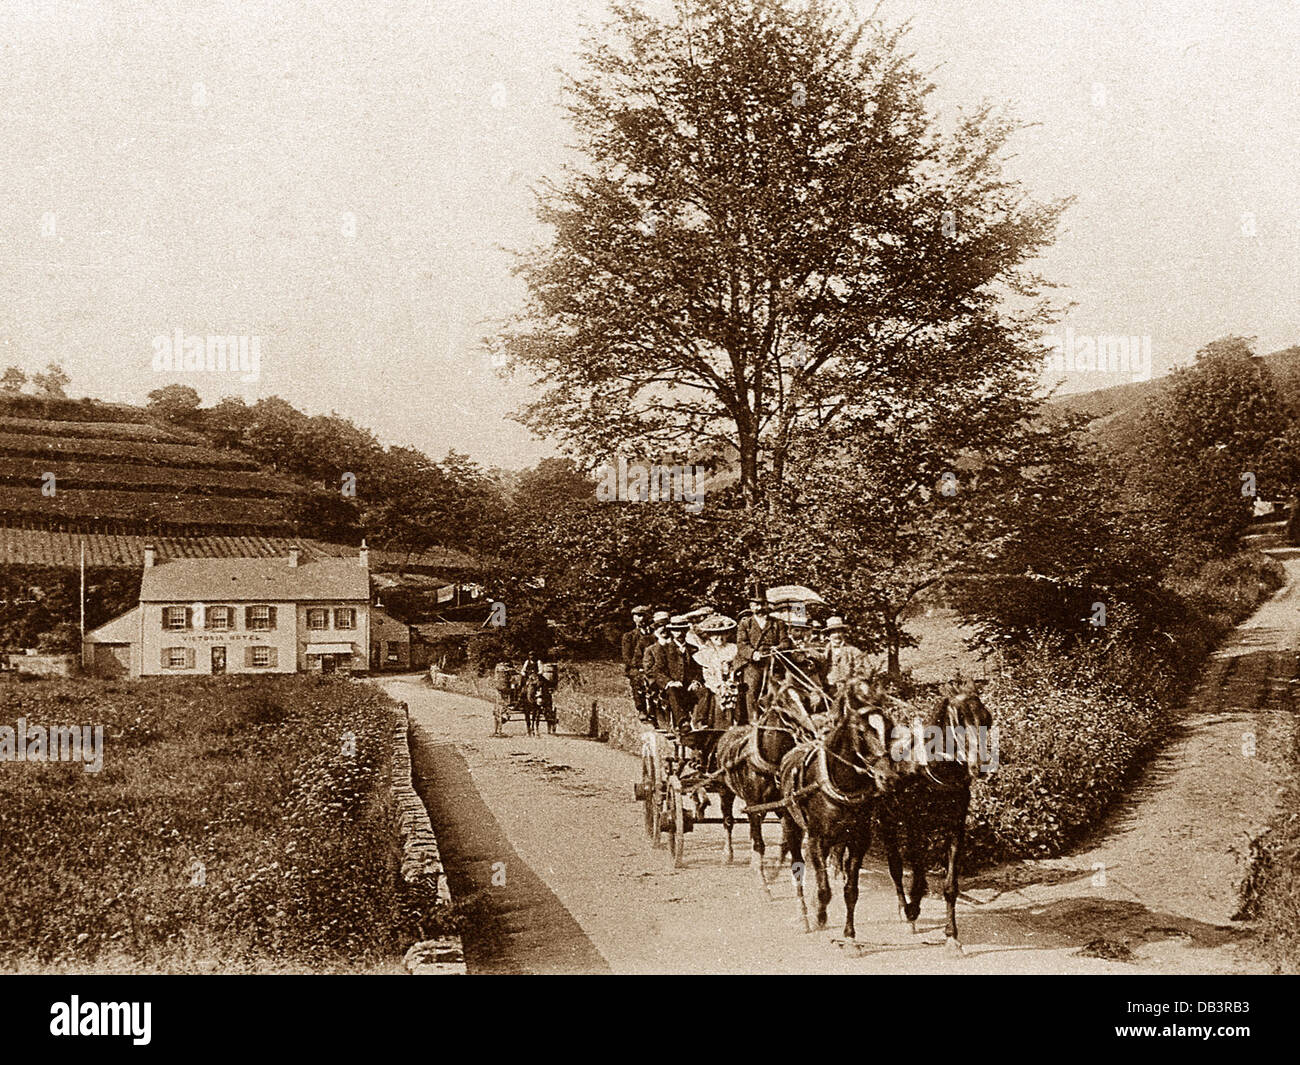 St. Peter's Valley Jersey Victorian period - Stock Image